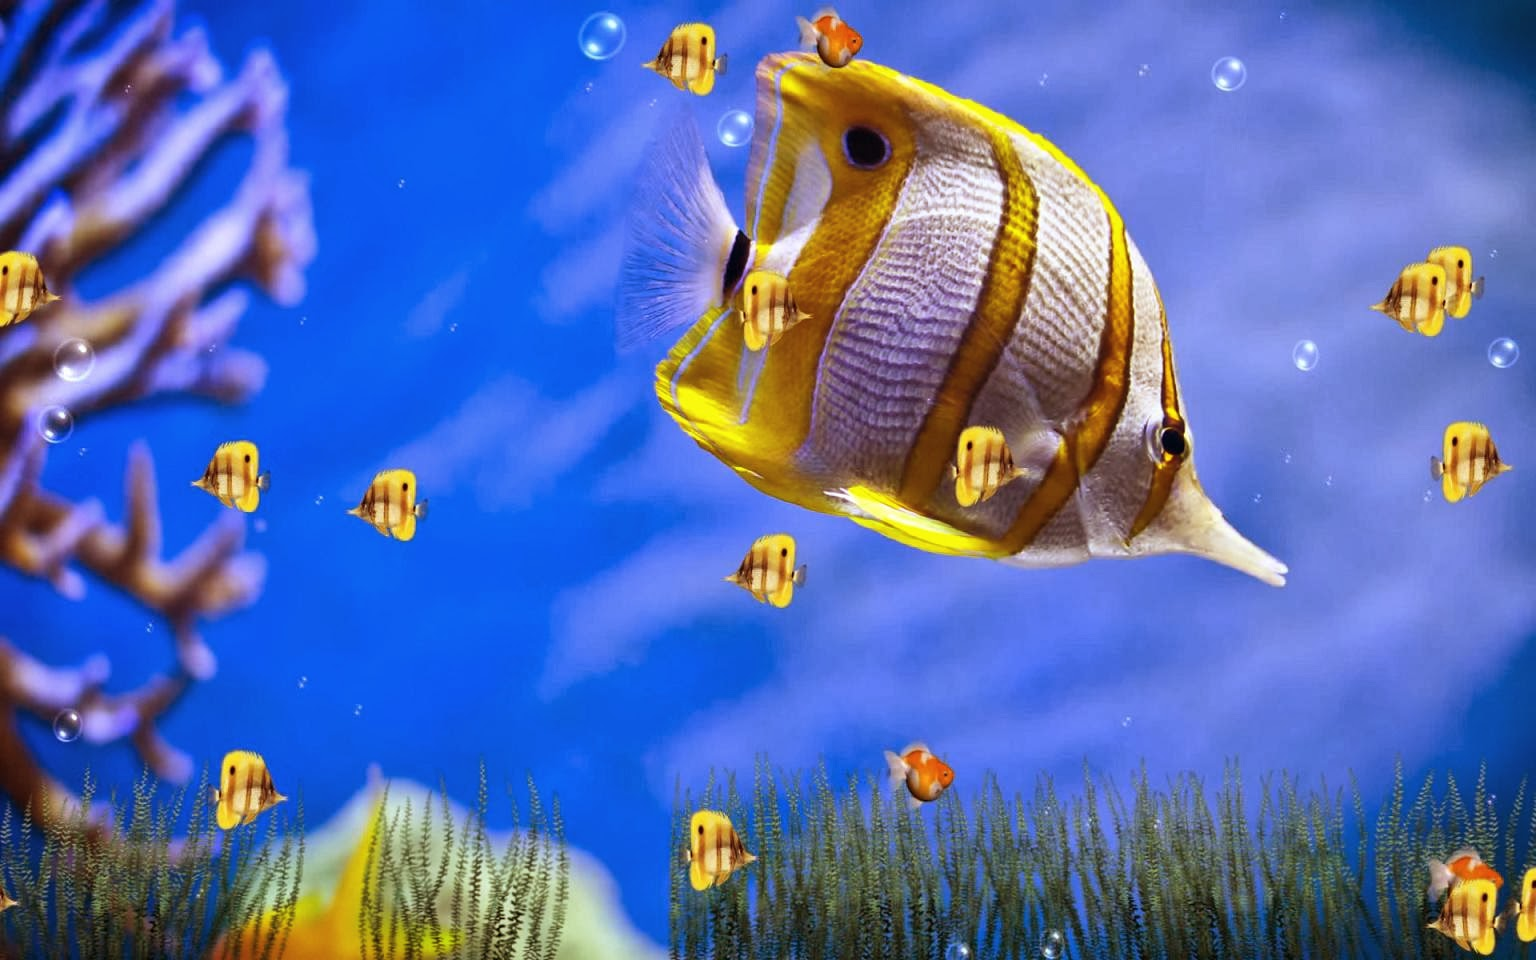 Animated WallpaperAnimated Wallpaper Windows 73D Animated Wallpapers 1536x960